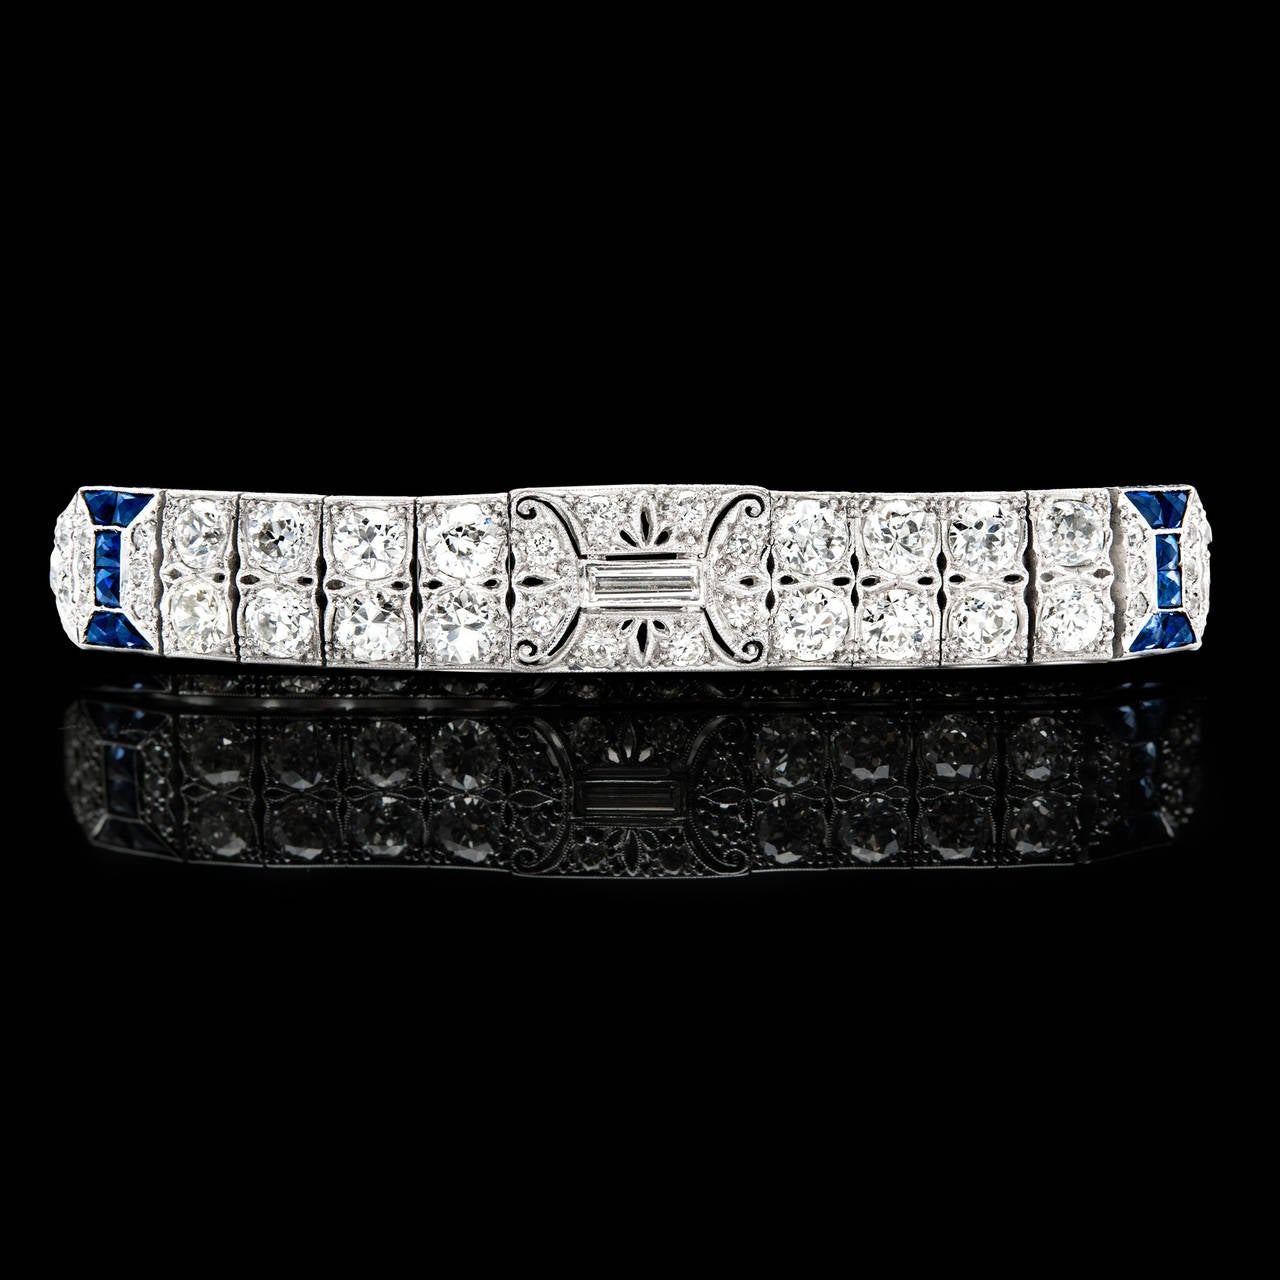 Hand Engraved Art Deco Diamond & Sapphire Bracelet Features 54 Old European and rectangular step cut Diamonds weighing a total of approximately 8.29 carats accented by 12 French and calibre-cut synthetic Blue Sapphires. The platinum is detailed in